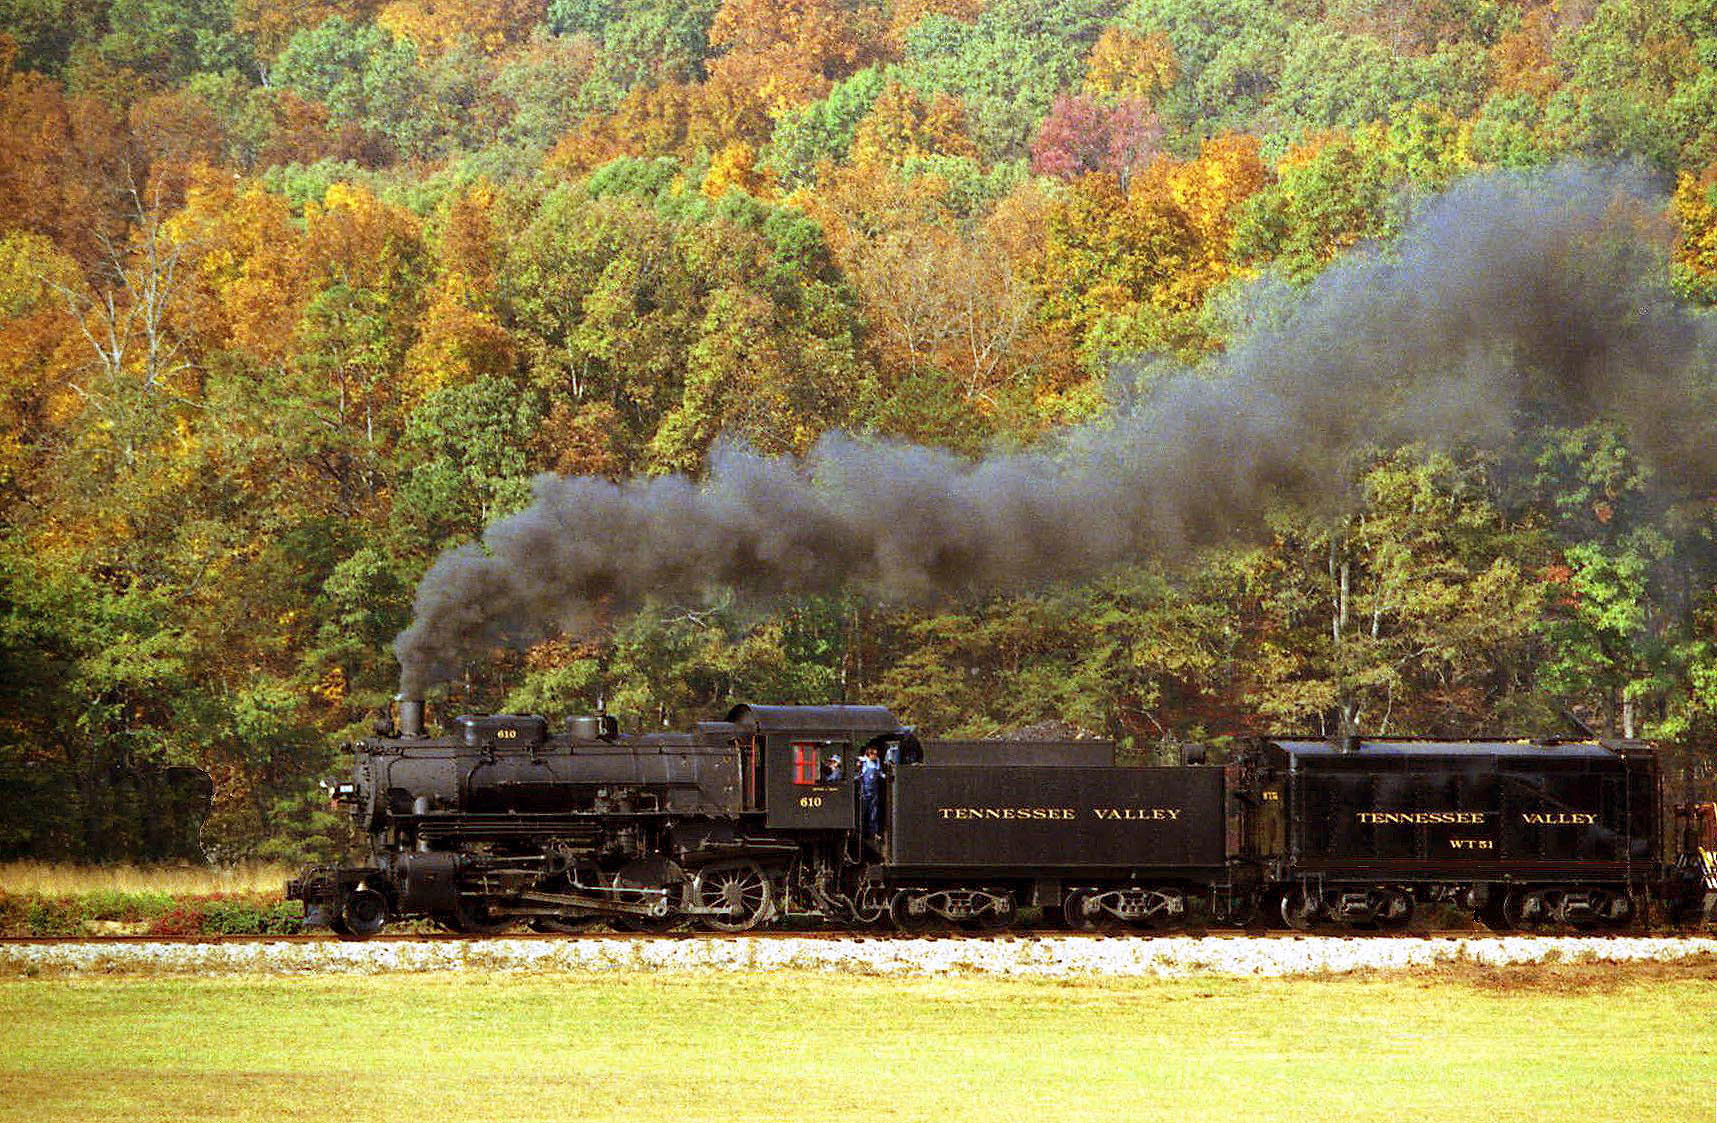 Tennessee Valley railroad museum Chattanooga TN